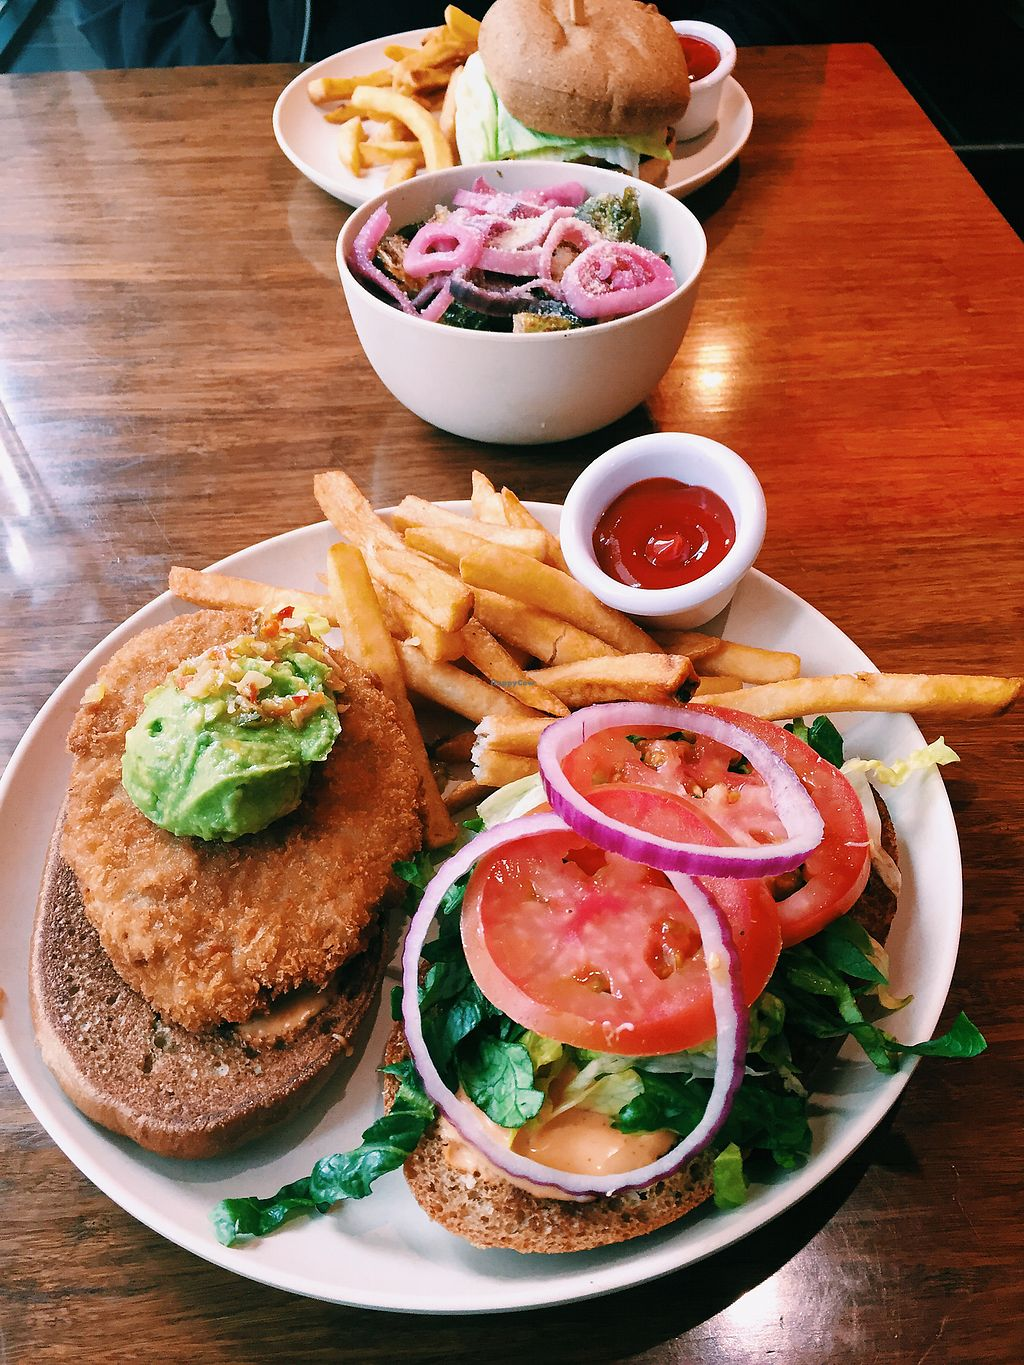 """Photo of Veggie Grill - Downtown Portland  by <a href=""""/members/profile/ginaterrito"""">ginaterrito</a> <br/>Beyond burger and chicken sandwich  <br/> April 4, 2018  - <a href='/contact/abuse/image/32544/380854'>Report</a>"""